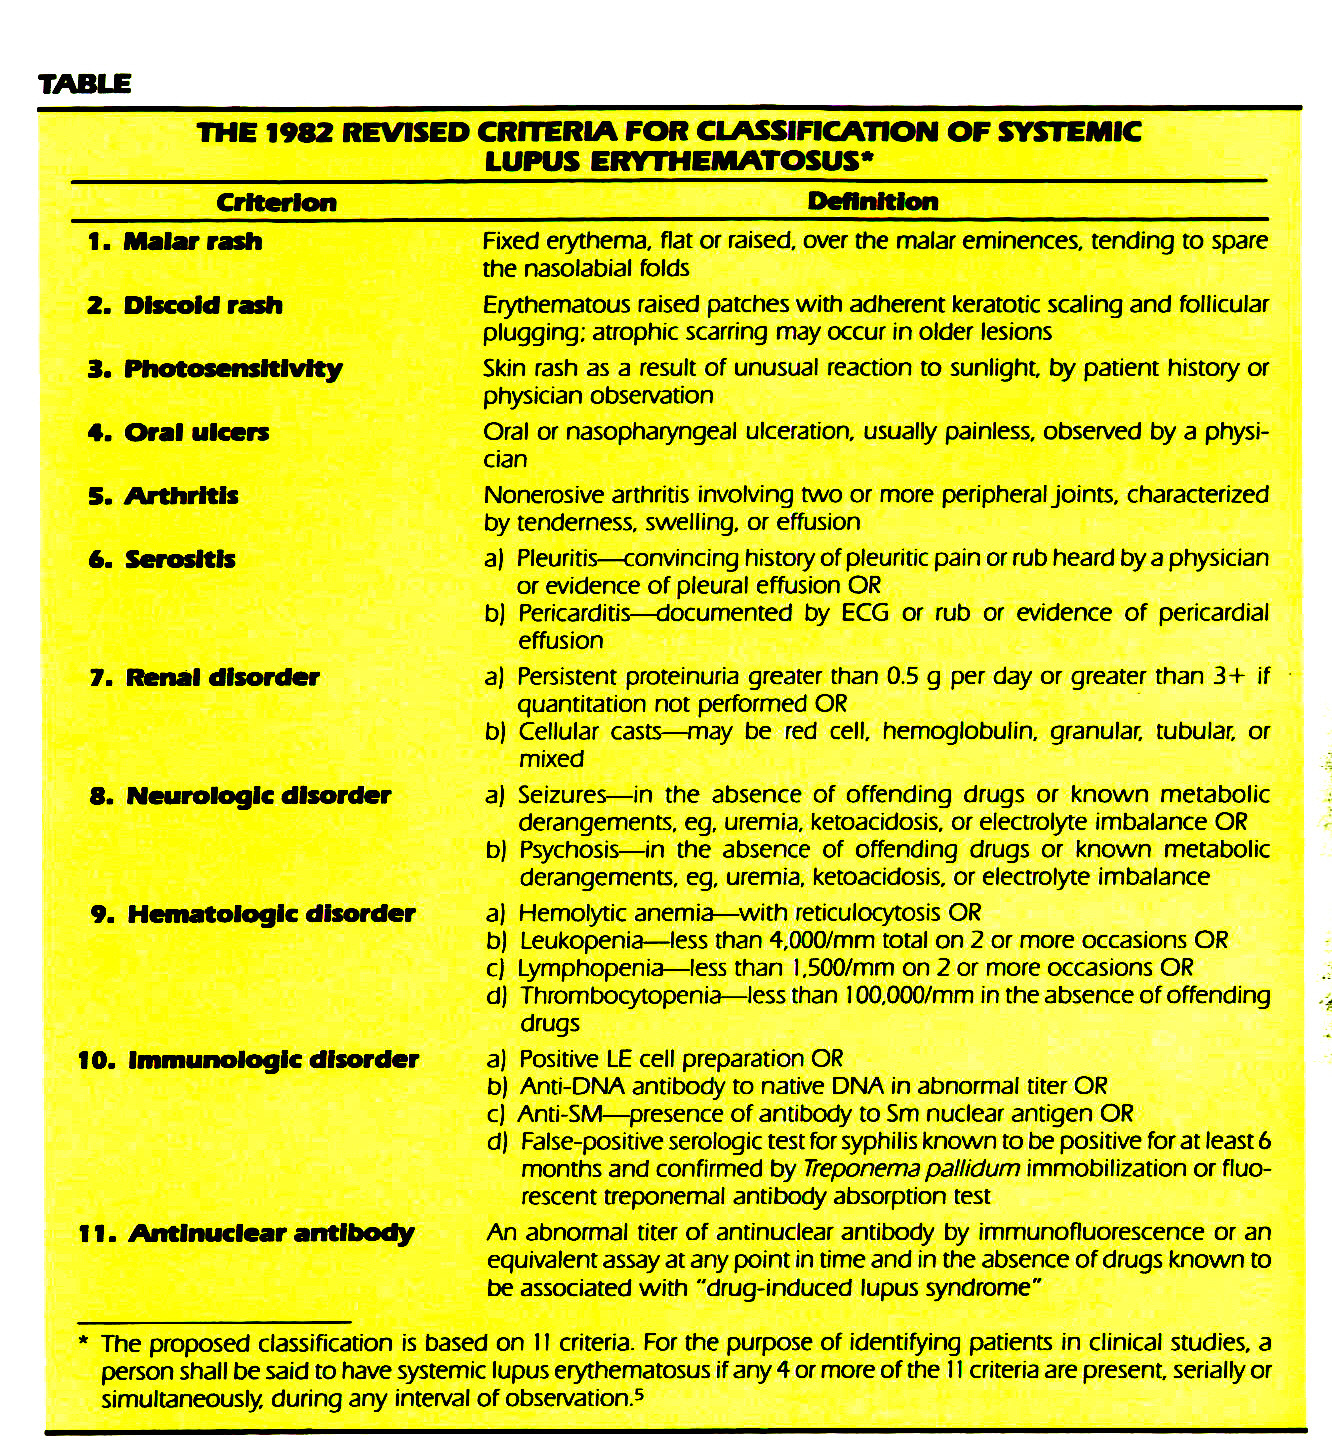 TABLETHE 1982 REVISED CRITERIA FOR CLASSIFICATION OF SYSTEMIC LUPUS ERYTHEMATOSUS*